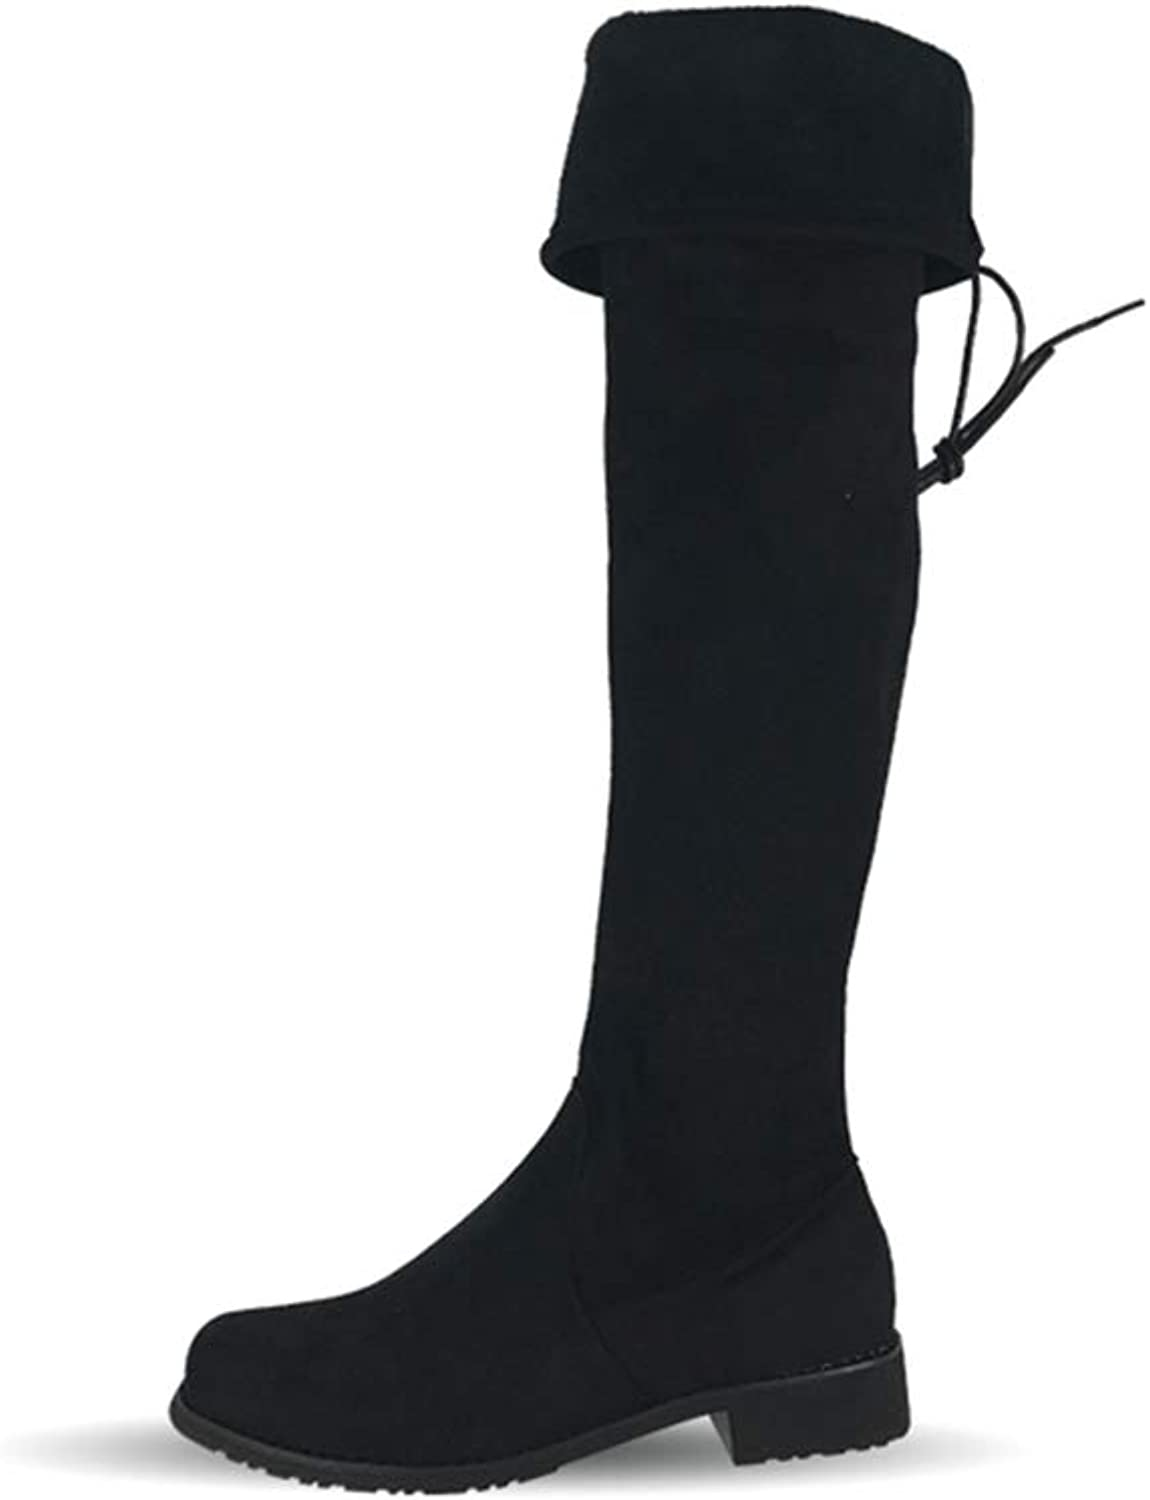 GEORPE Over The Knee Motorcycle Boots Party Low Heels Thigh High shoes